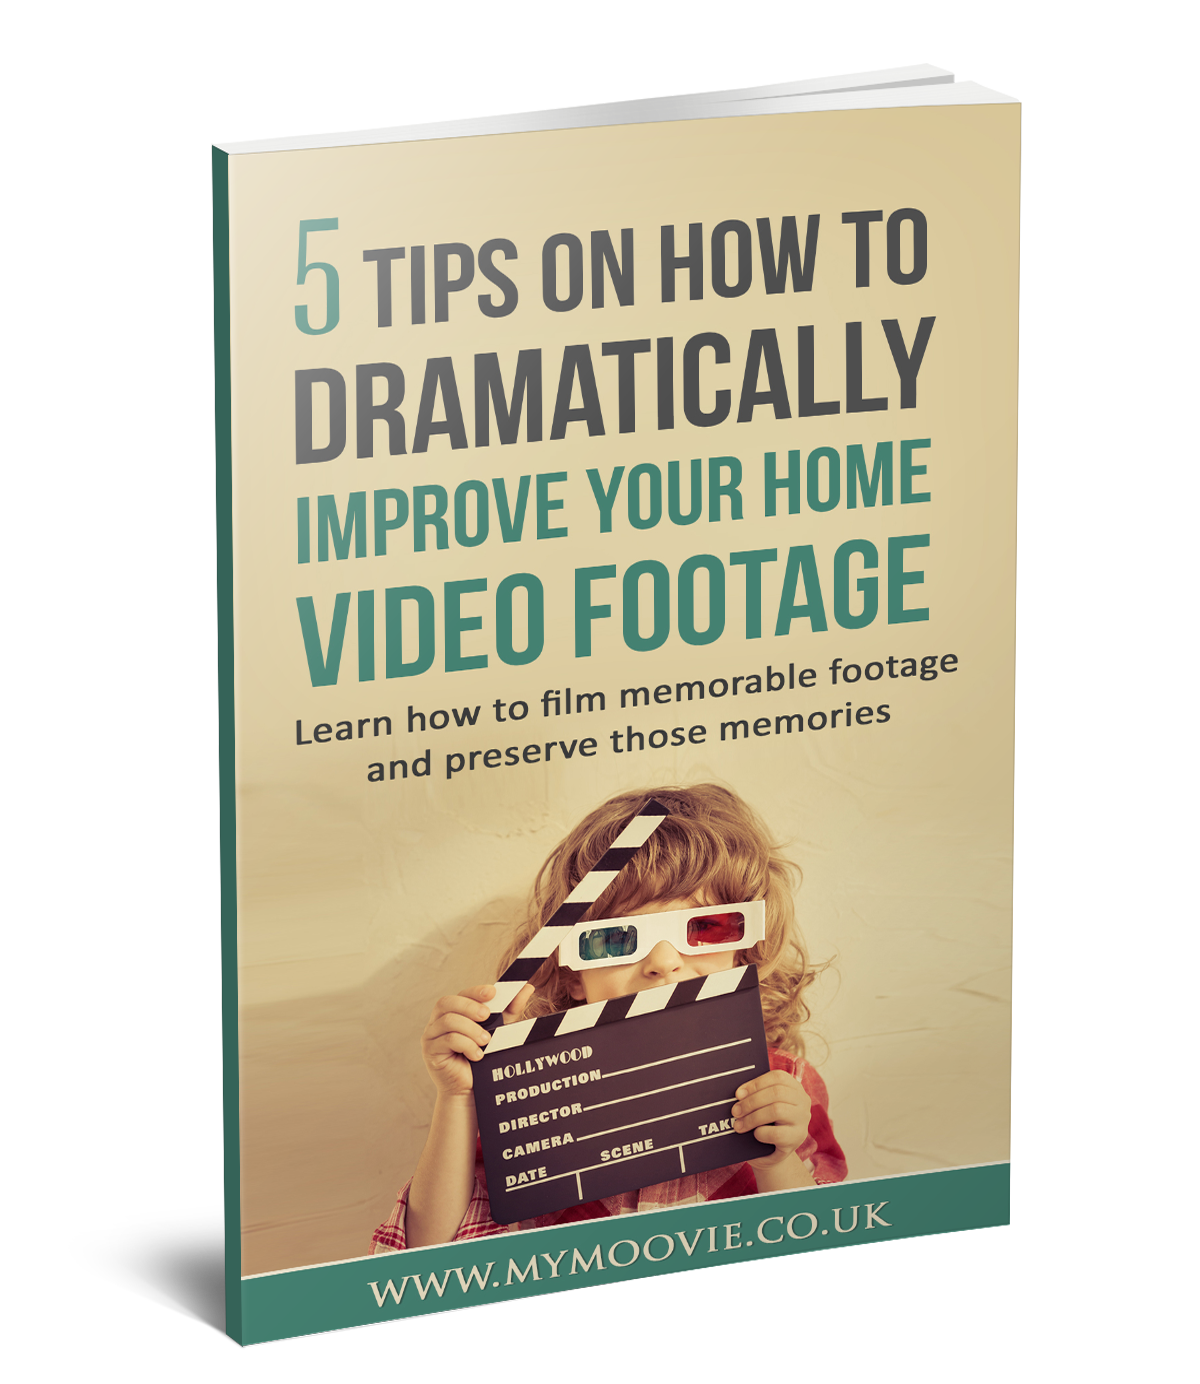 5 tips to improve your home video footage